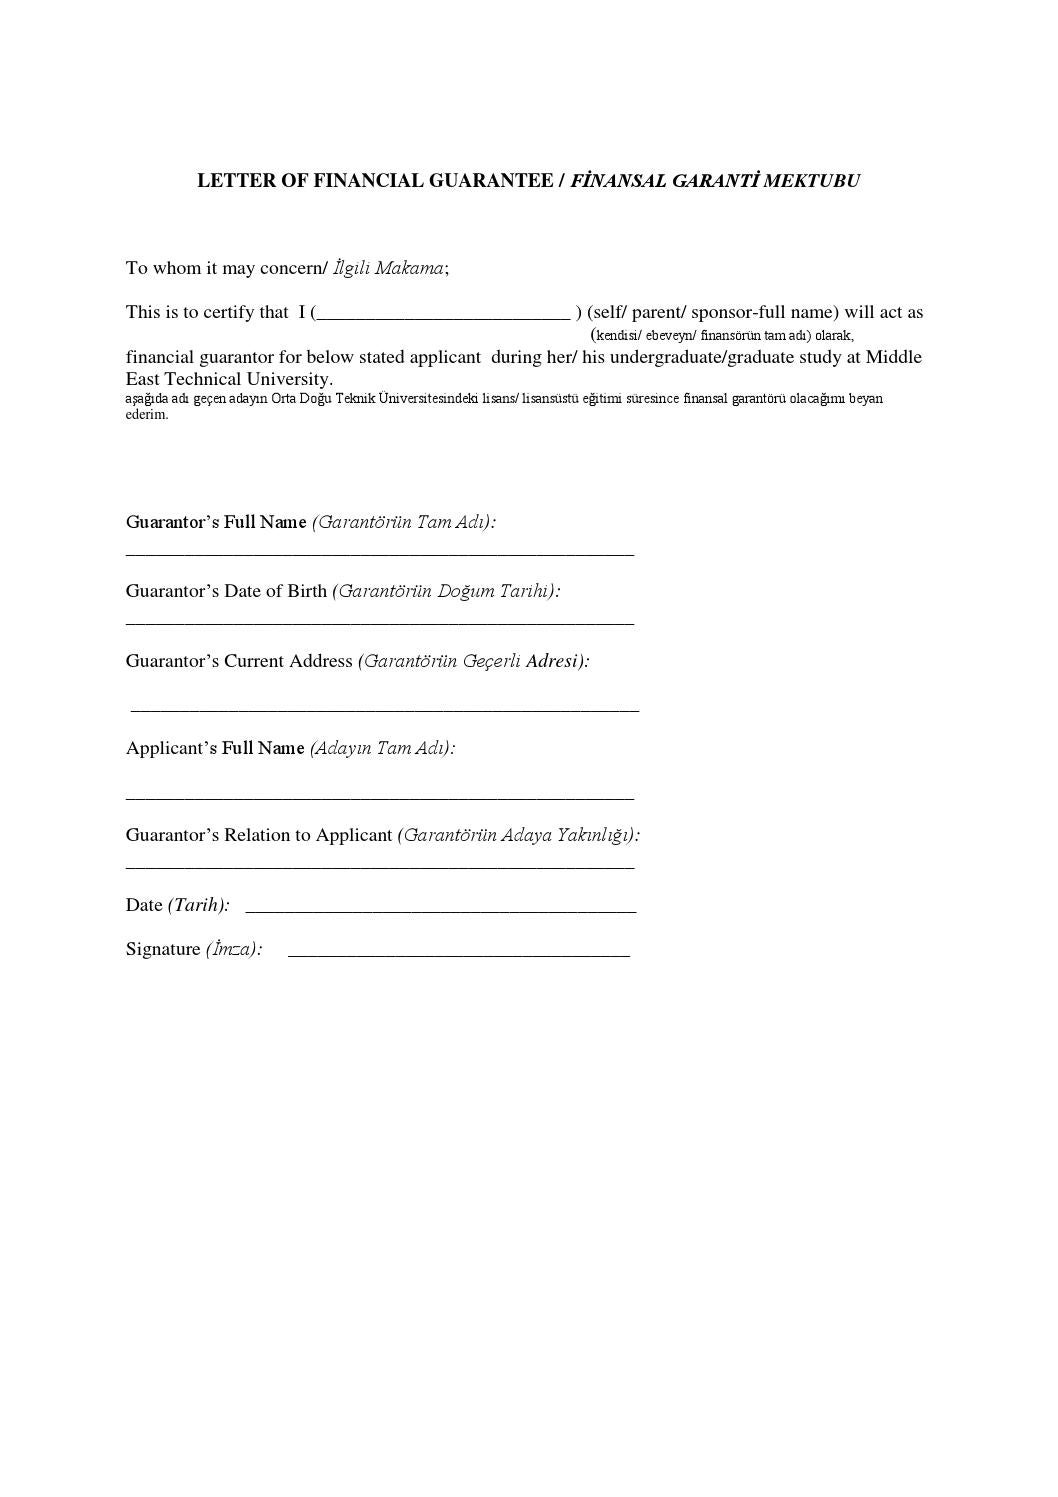 Letter of financial guarantee 2016 2017 by metu mentor issuu thecheapjerseys Image collections